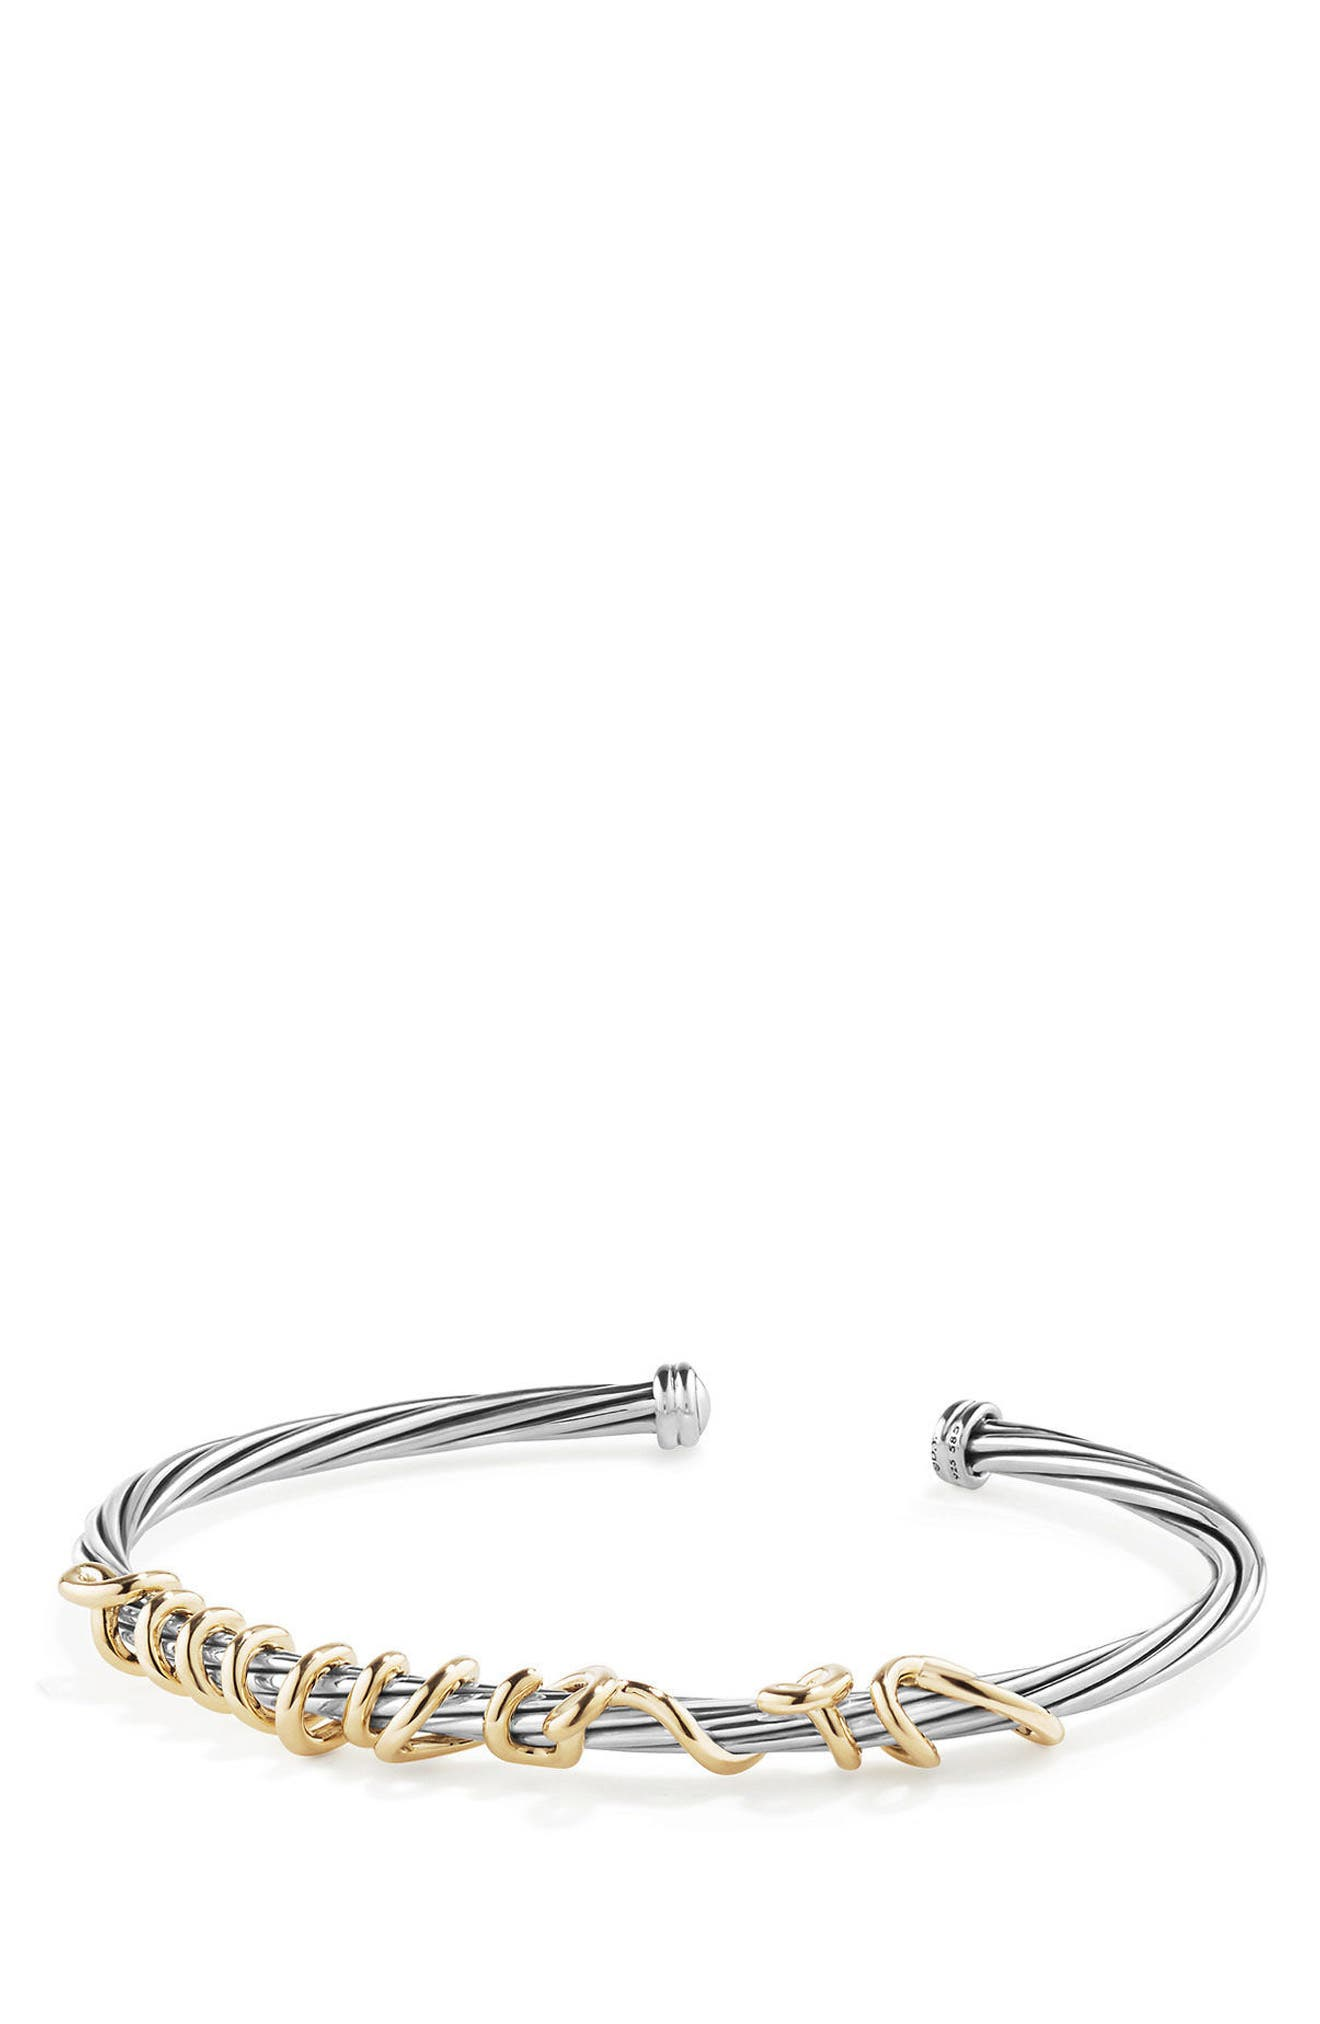 DY Whispers Je T'aime Bracelet with 14k Gold,                             Main thumbnail 1, color,                             Silver/ Gold